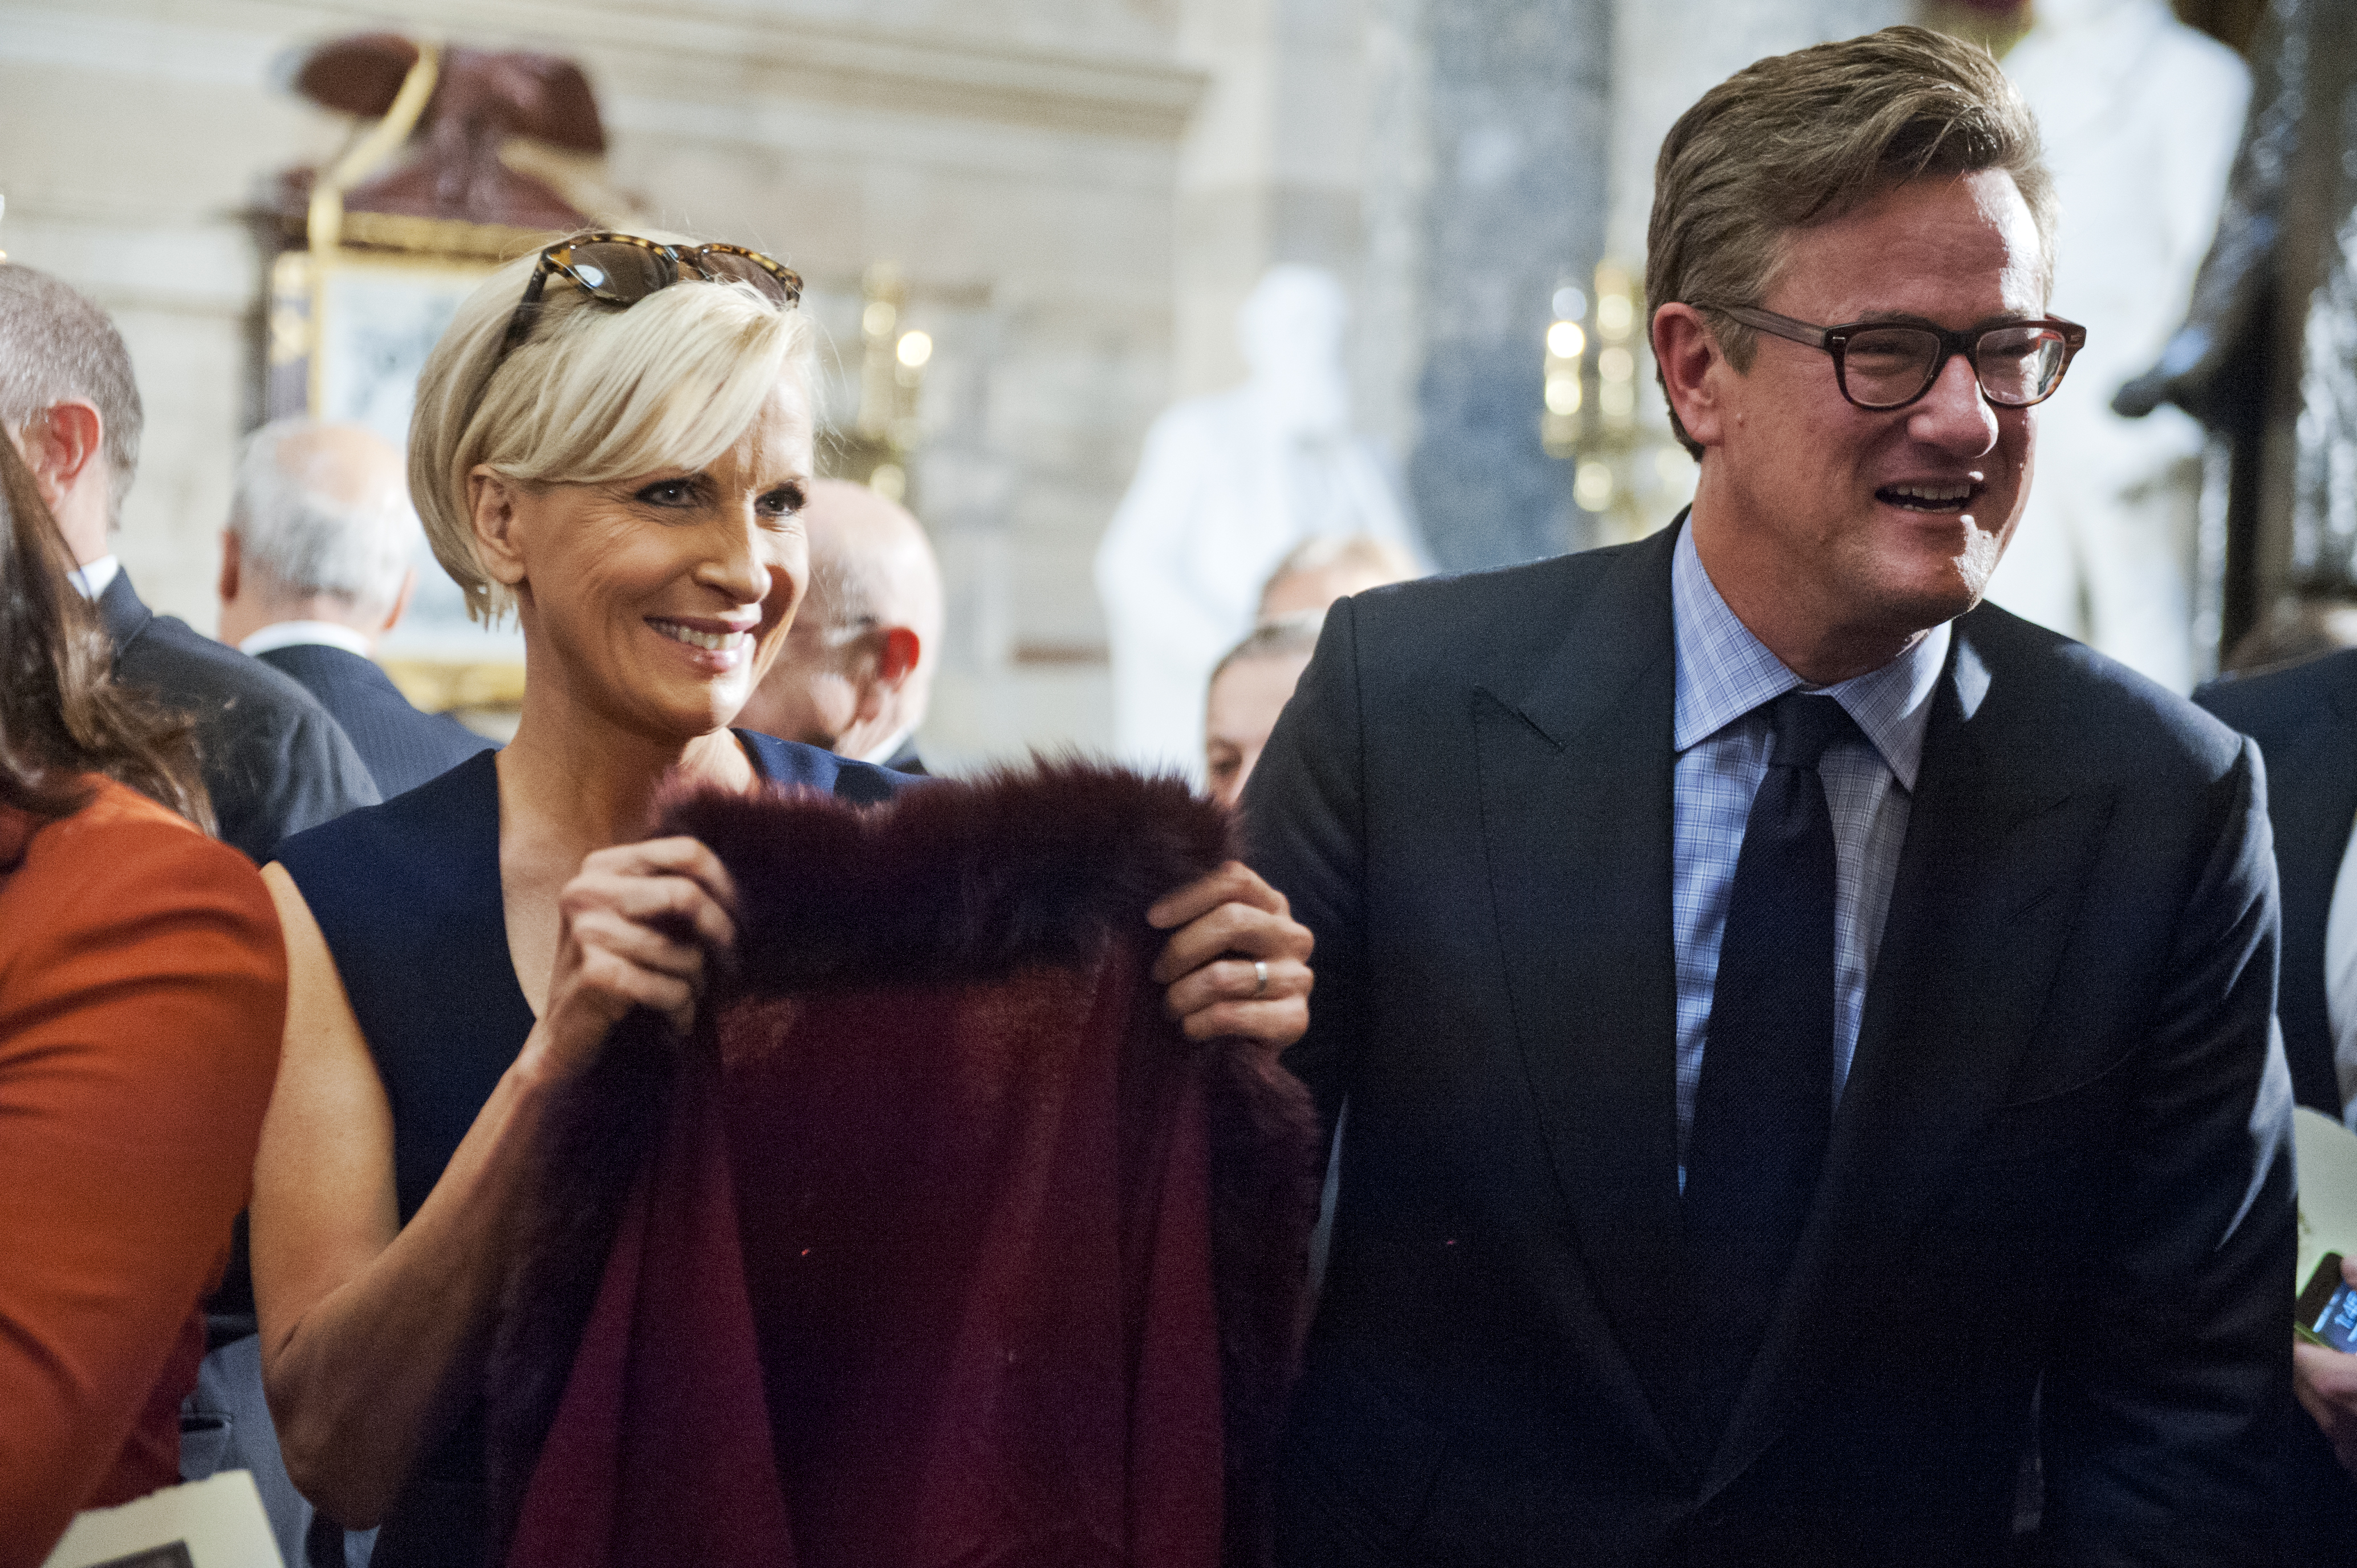 Television personality Mika Brzezinski, and her co-host Joe Scarborough, attend a bust unveiling ceremony for the late Czech leader Vaclav Havel in the Capitol's Statuary Hall, November 19, 2014.